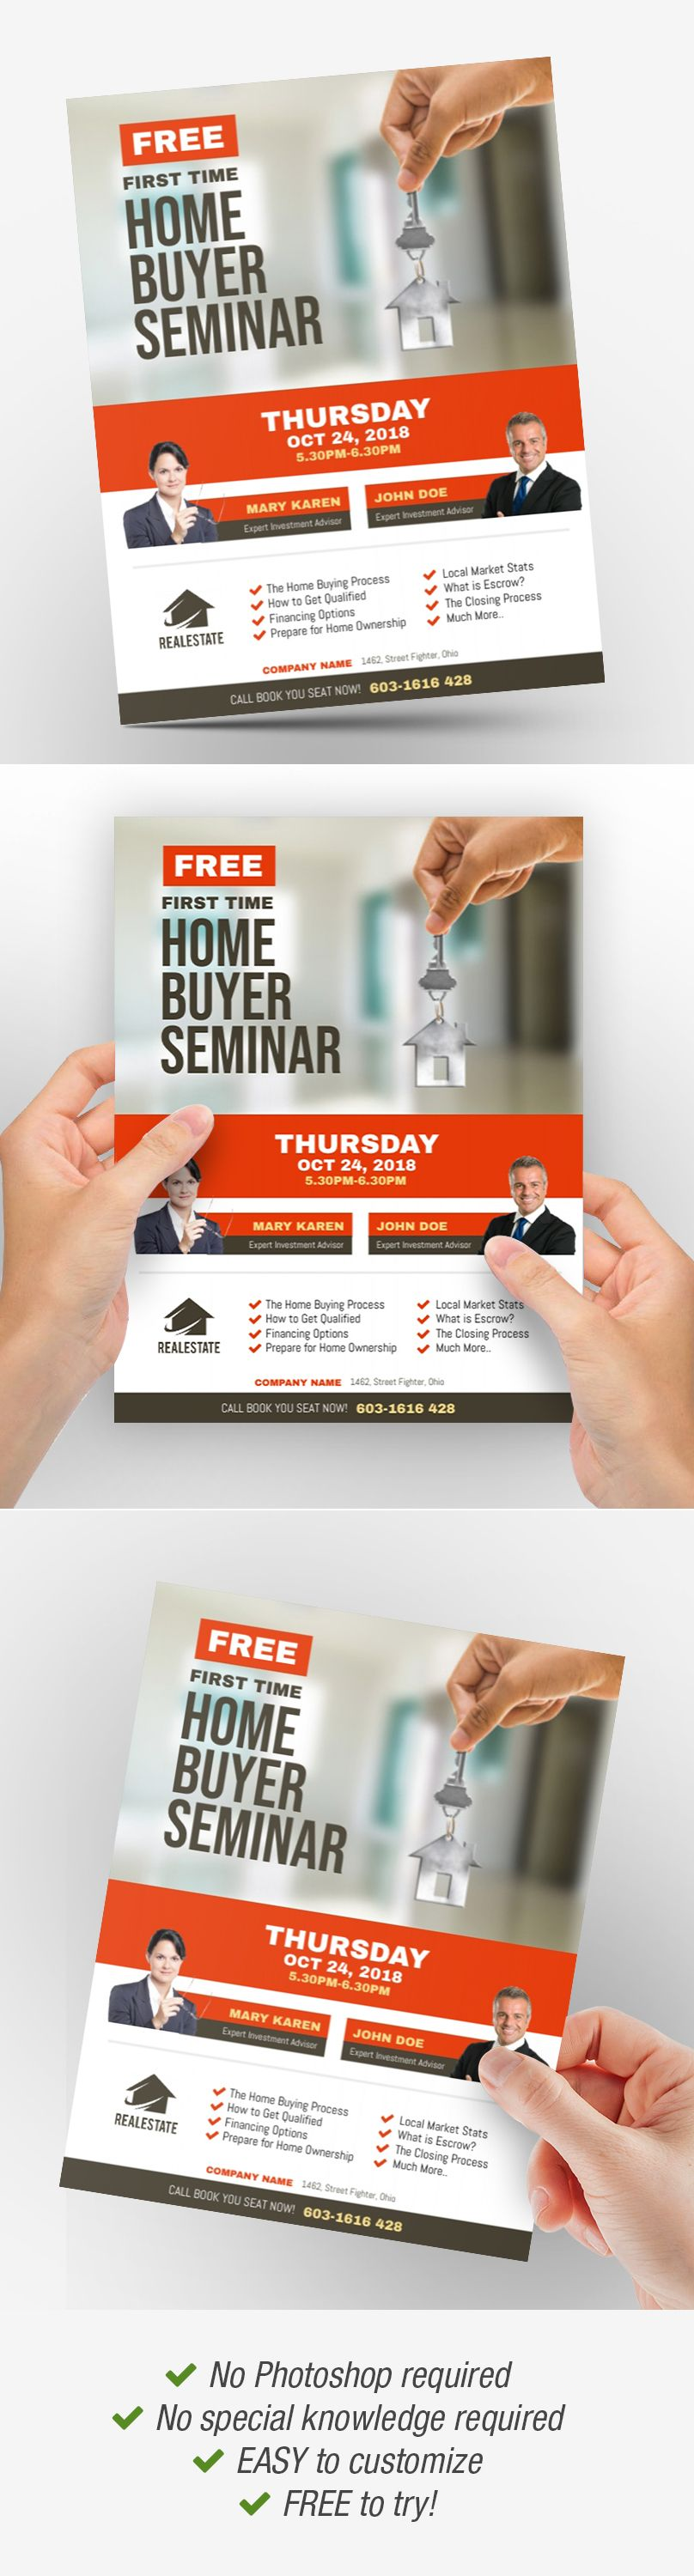 First Time Home Buyer Seminar Flyer First Time Home Buyers Flyer Real Estate Flyers Home buyer seminar flyer template